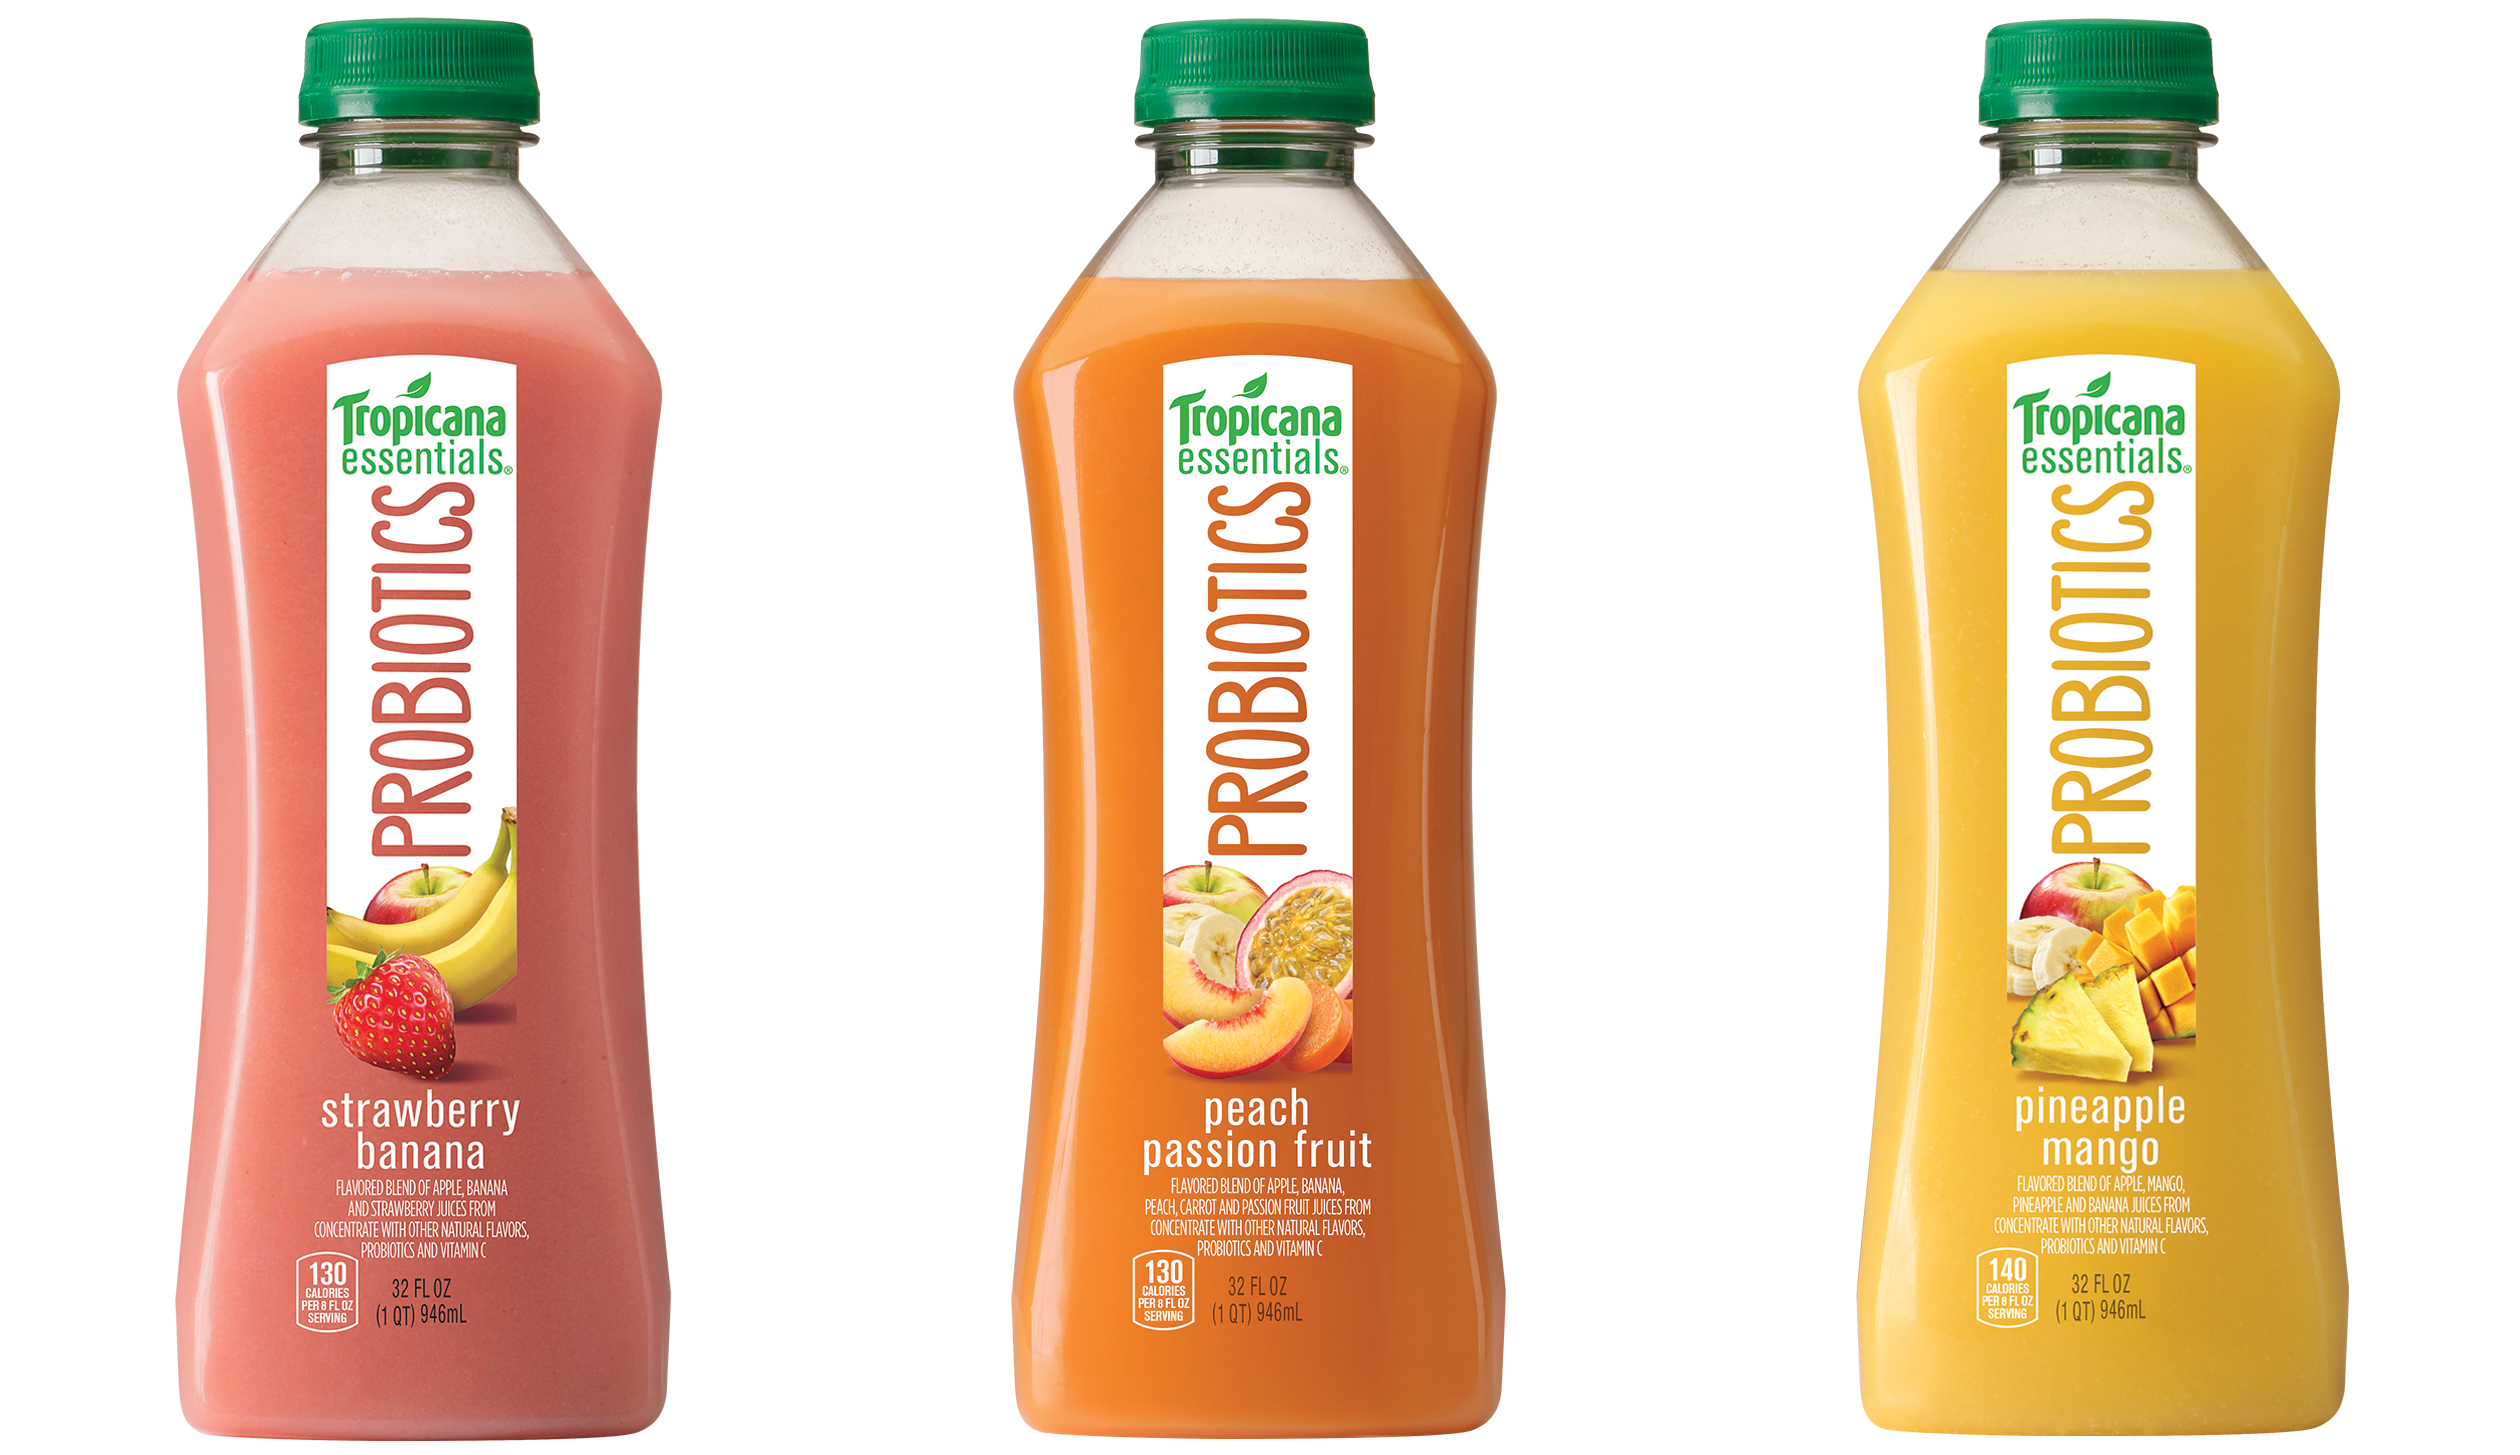 PepsiCo's new Tropicana Essentials Probiotics is a bet on the health and wellness space.